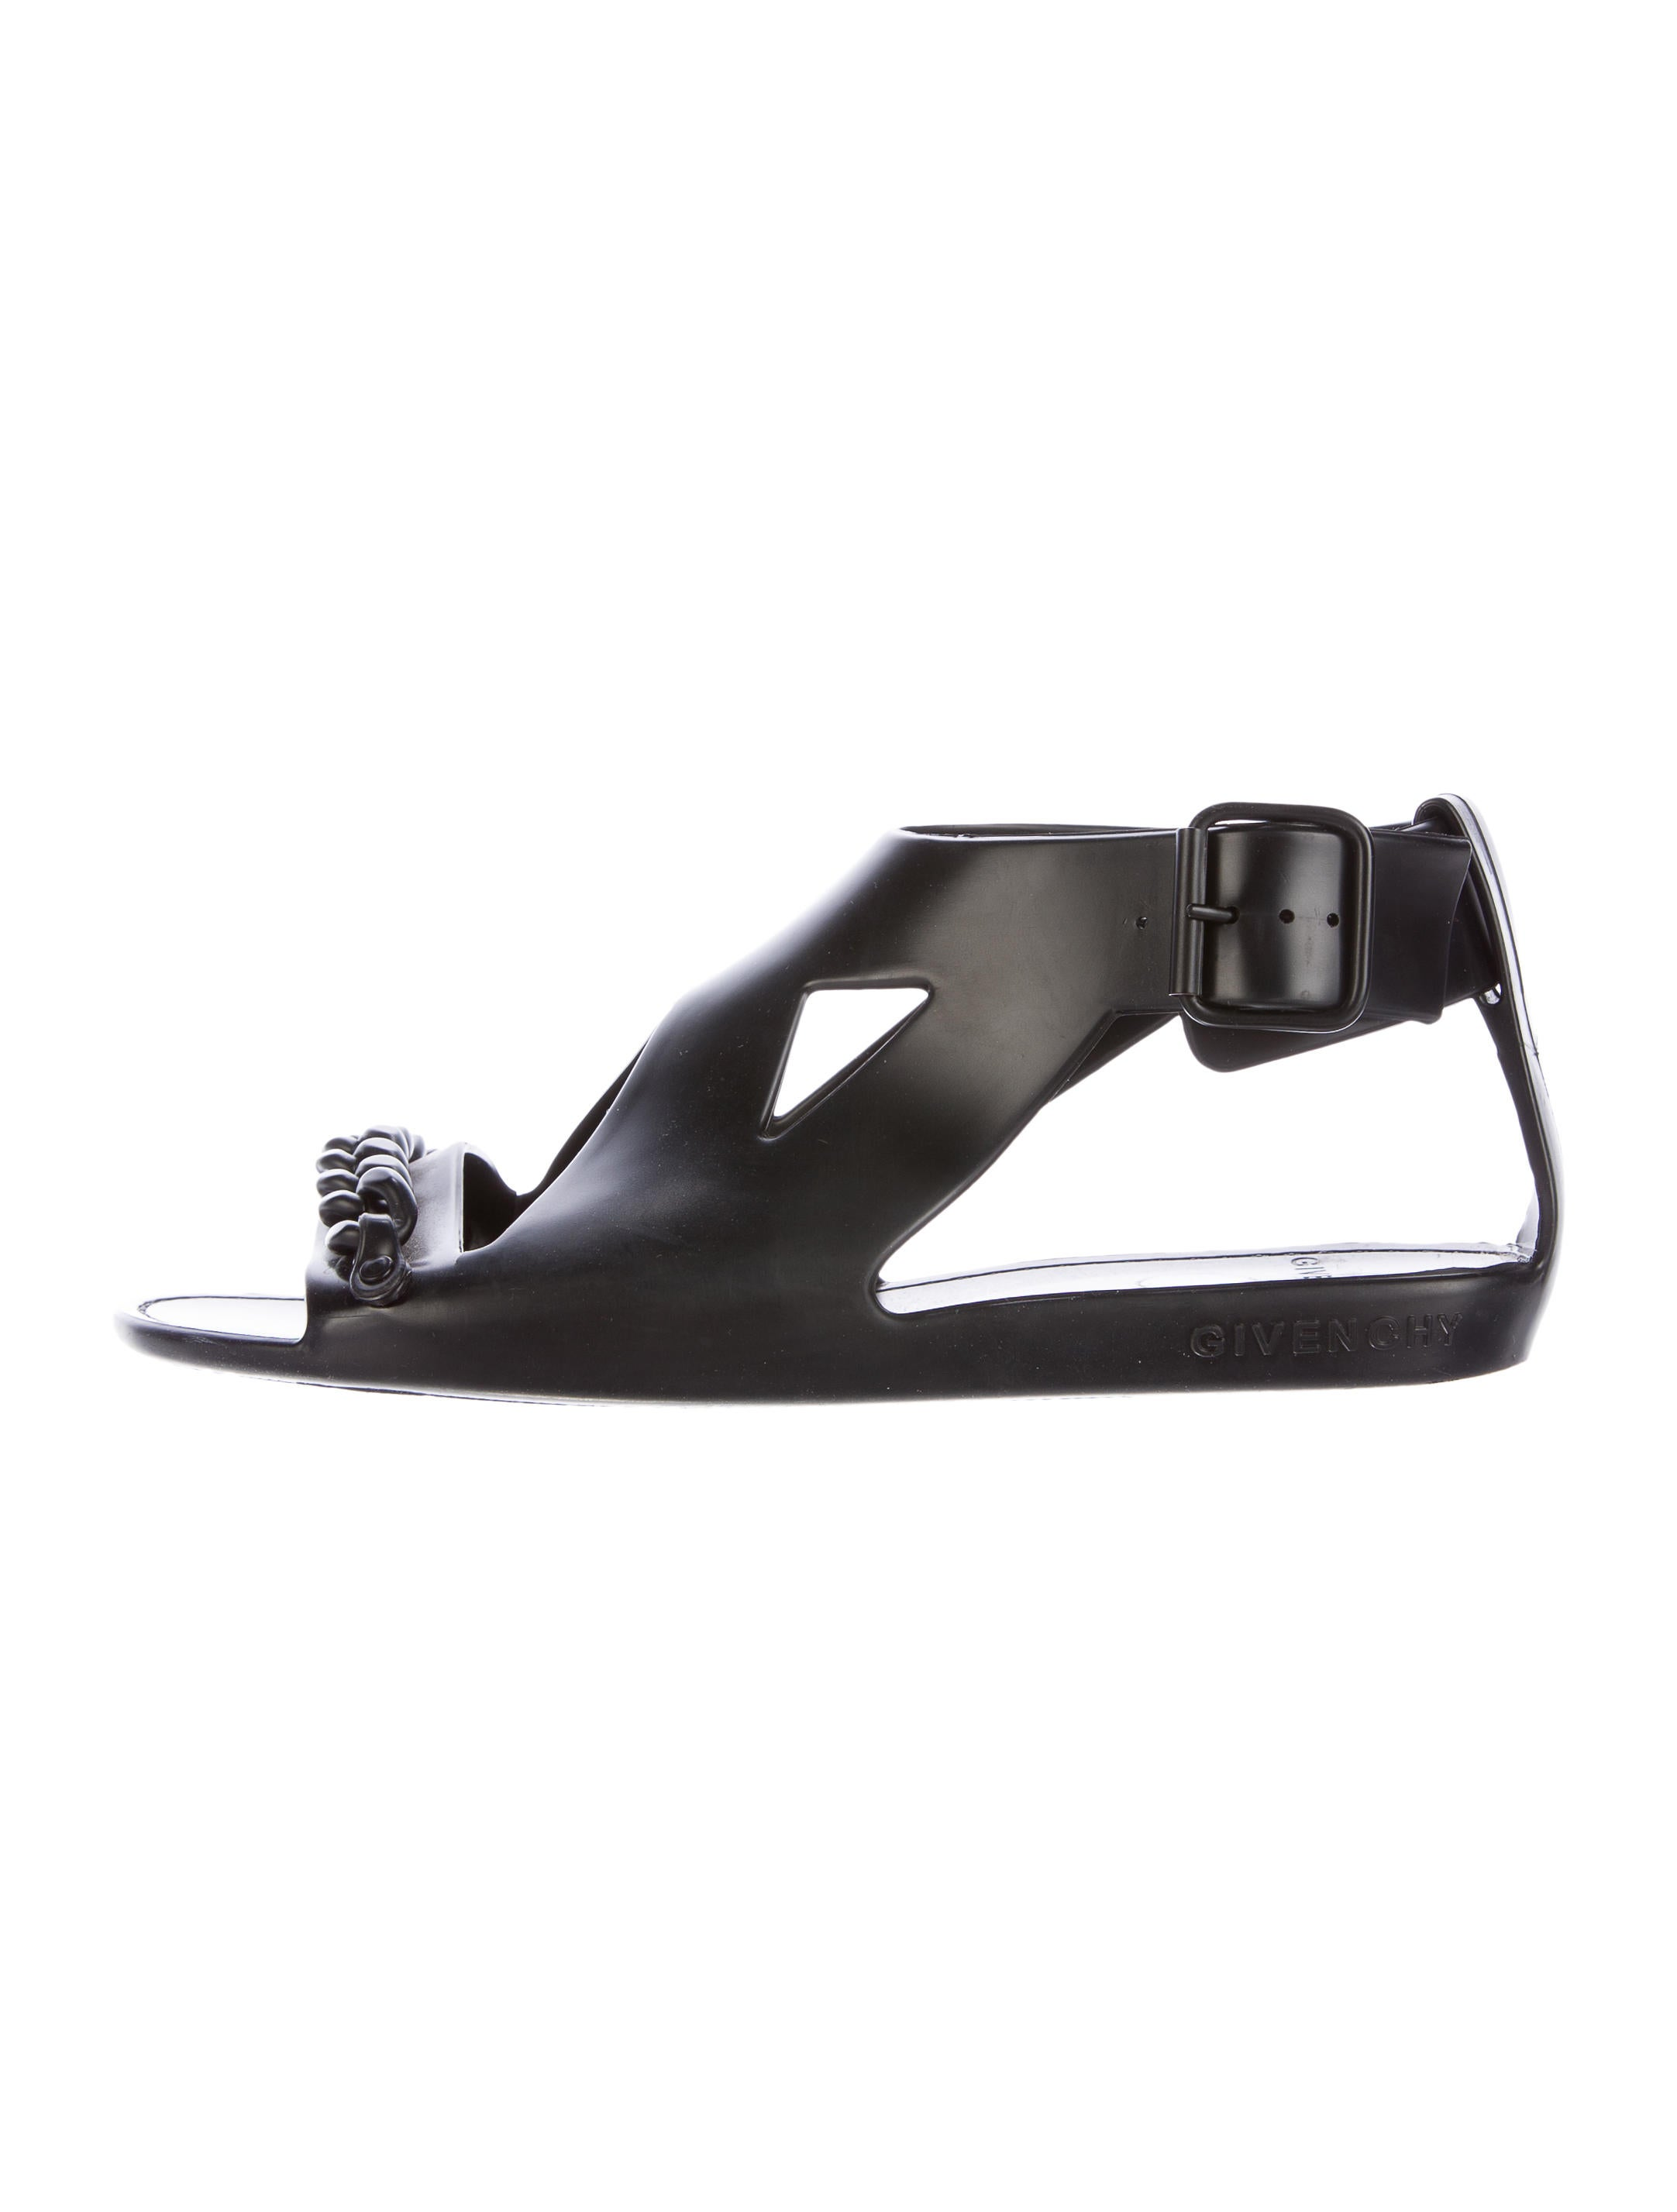 Givenchy Chain-Link Rubber Sandals